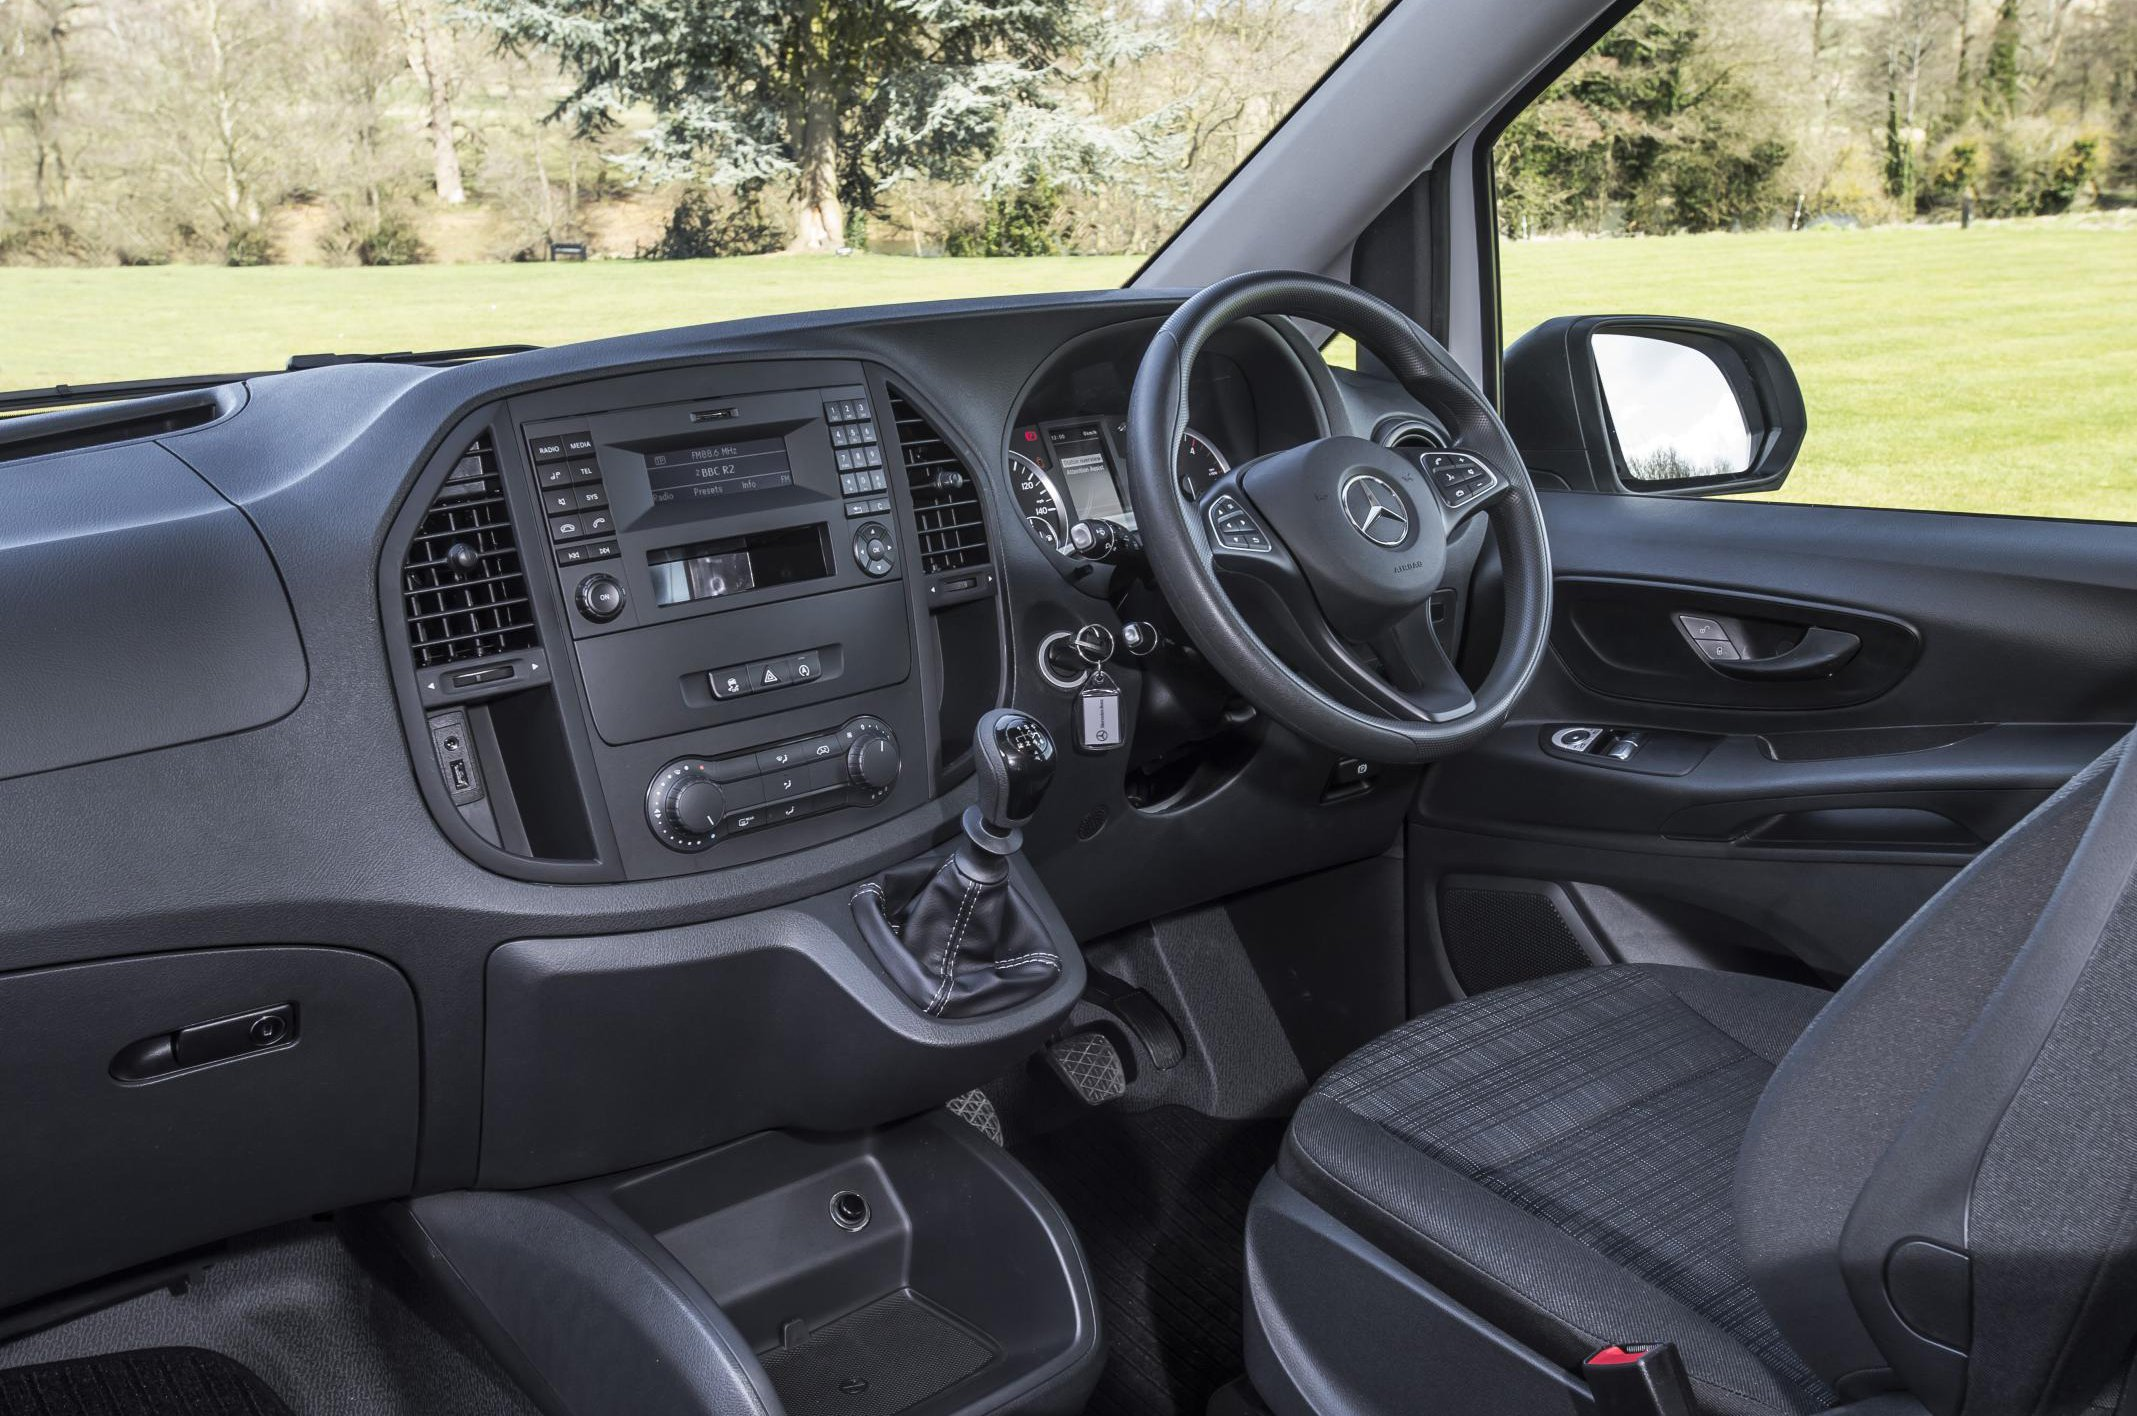 Mercedes Vito dashboard